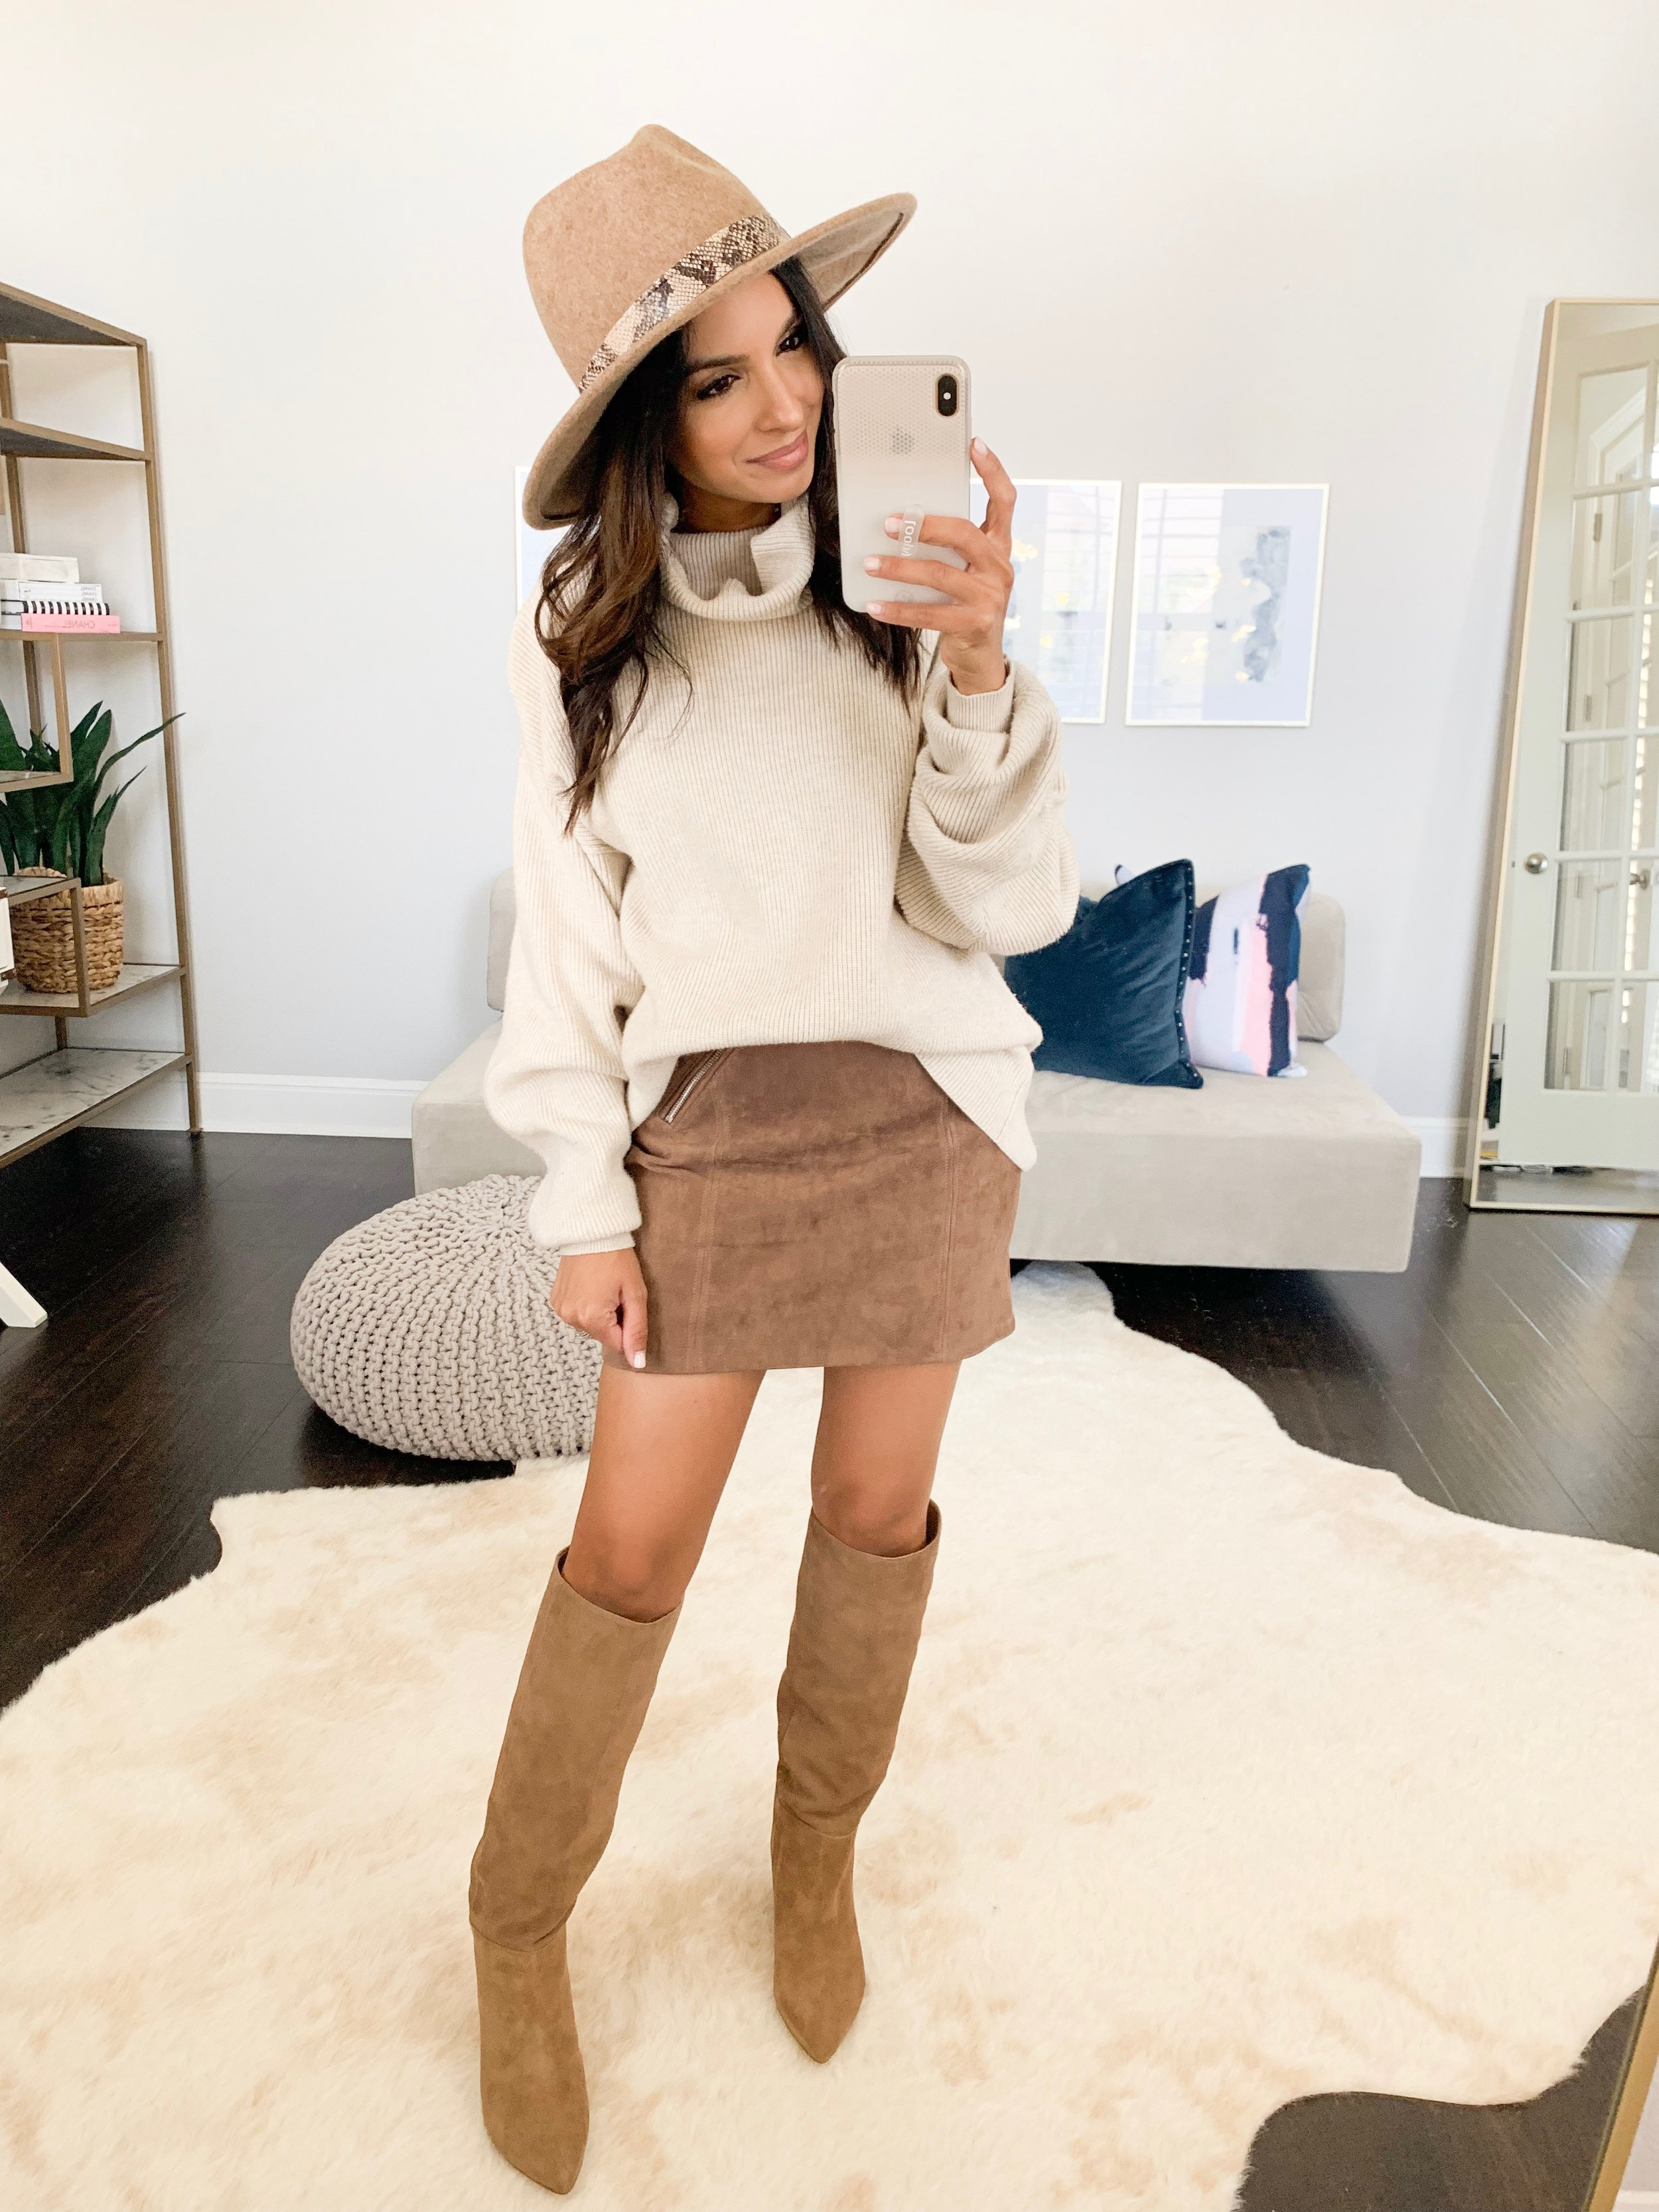 Sweater (XS) // Suede Mini (24) // Boots (TTS) // Hat